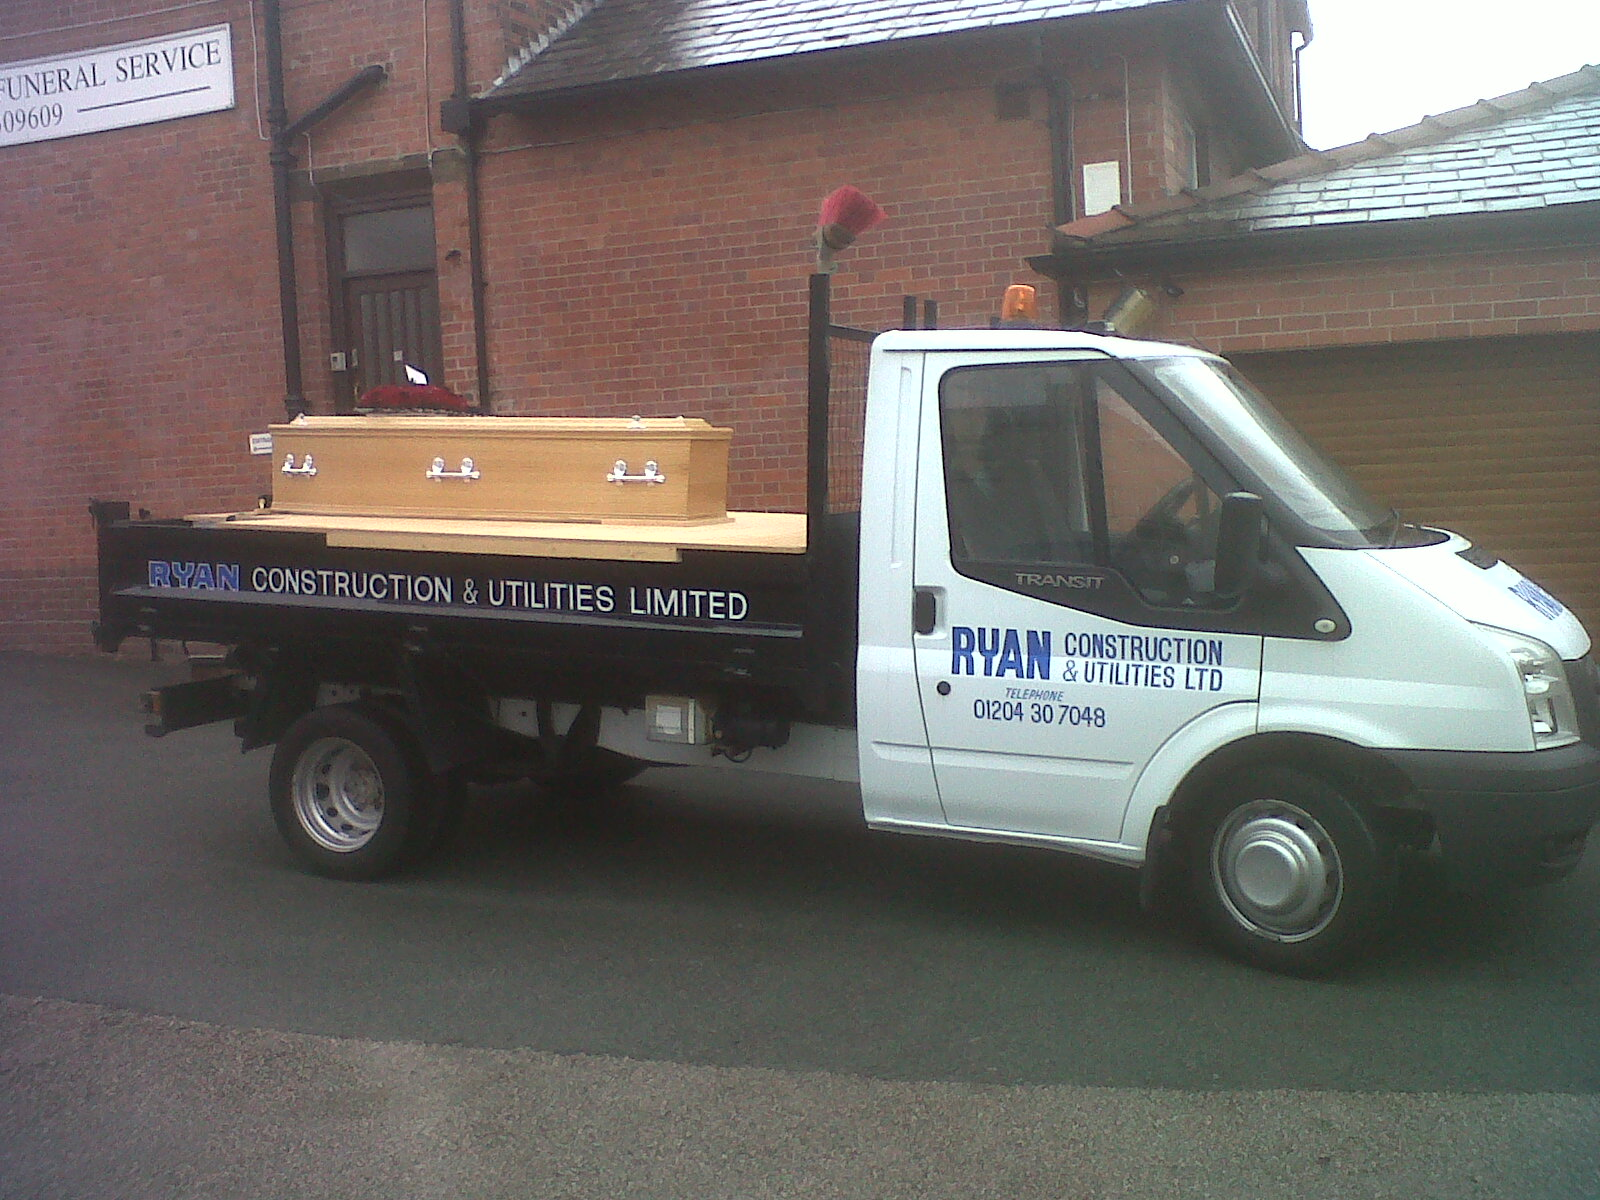 A gentleman's own van was used to transport his coffin